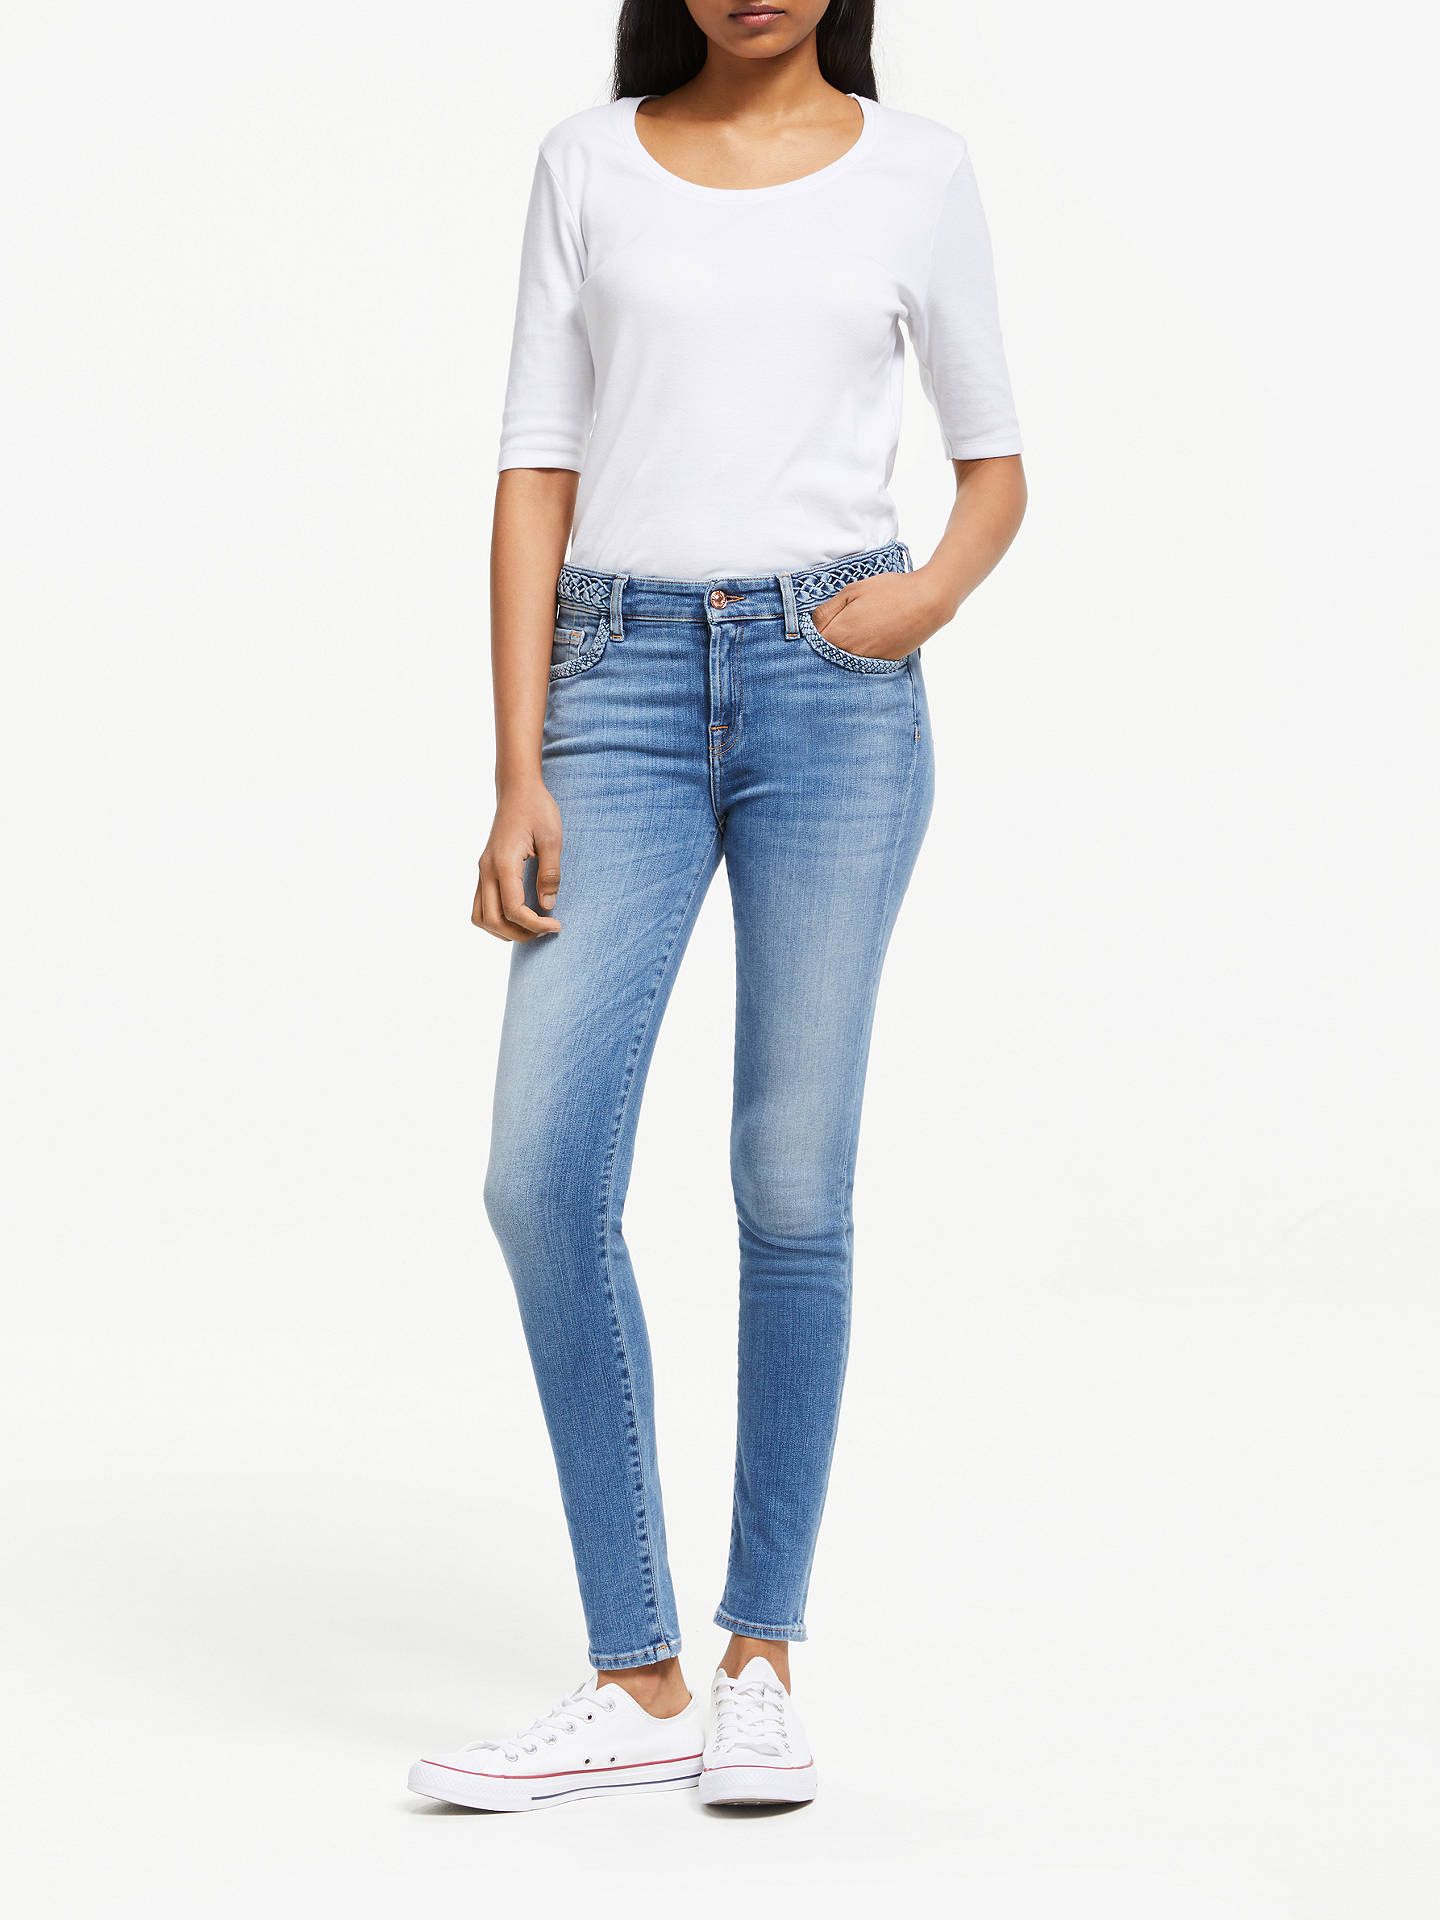 Buy 7 For All Mankind Skinny Slim Illusion Jeans, Light Blue, 24 Online at johnlewis.com